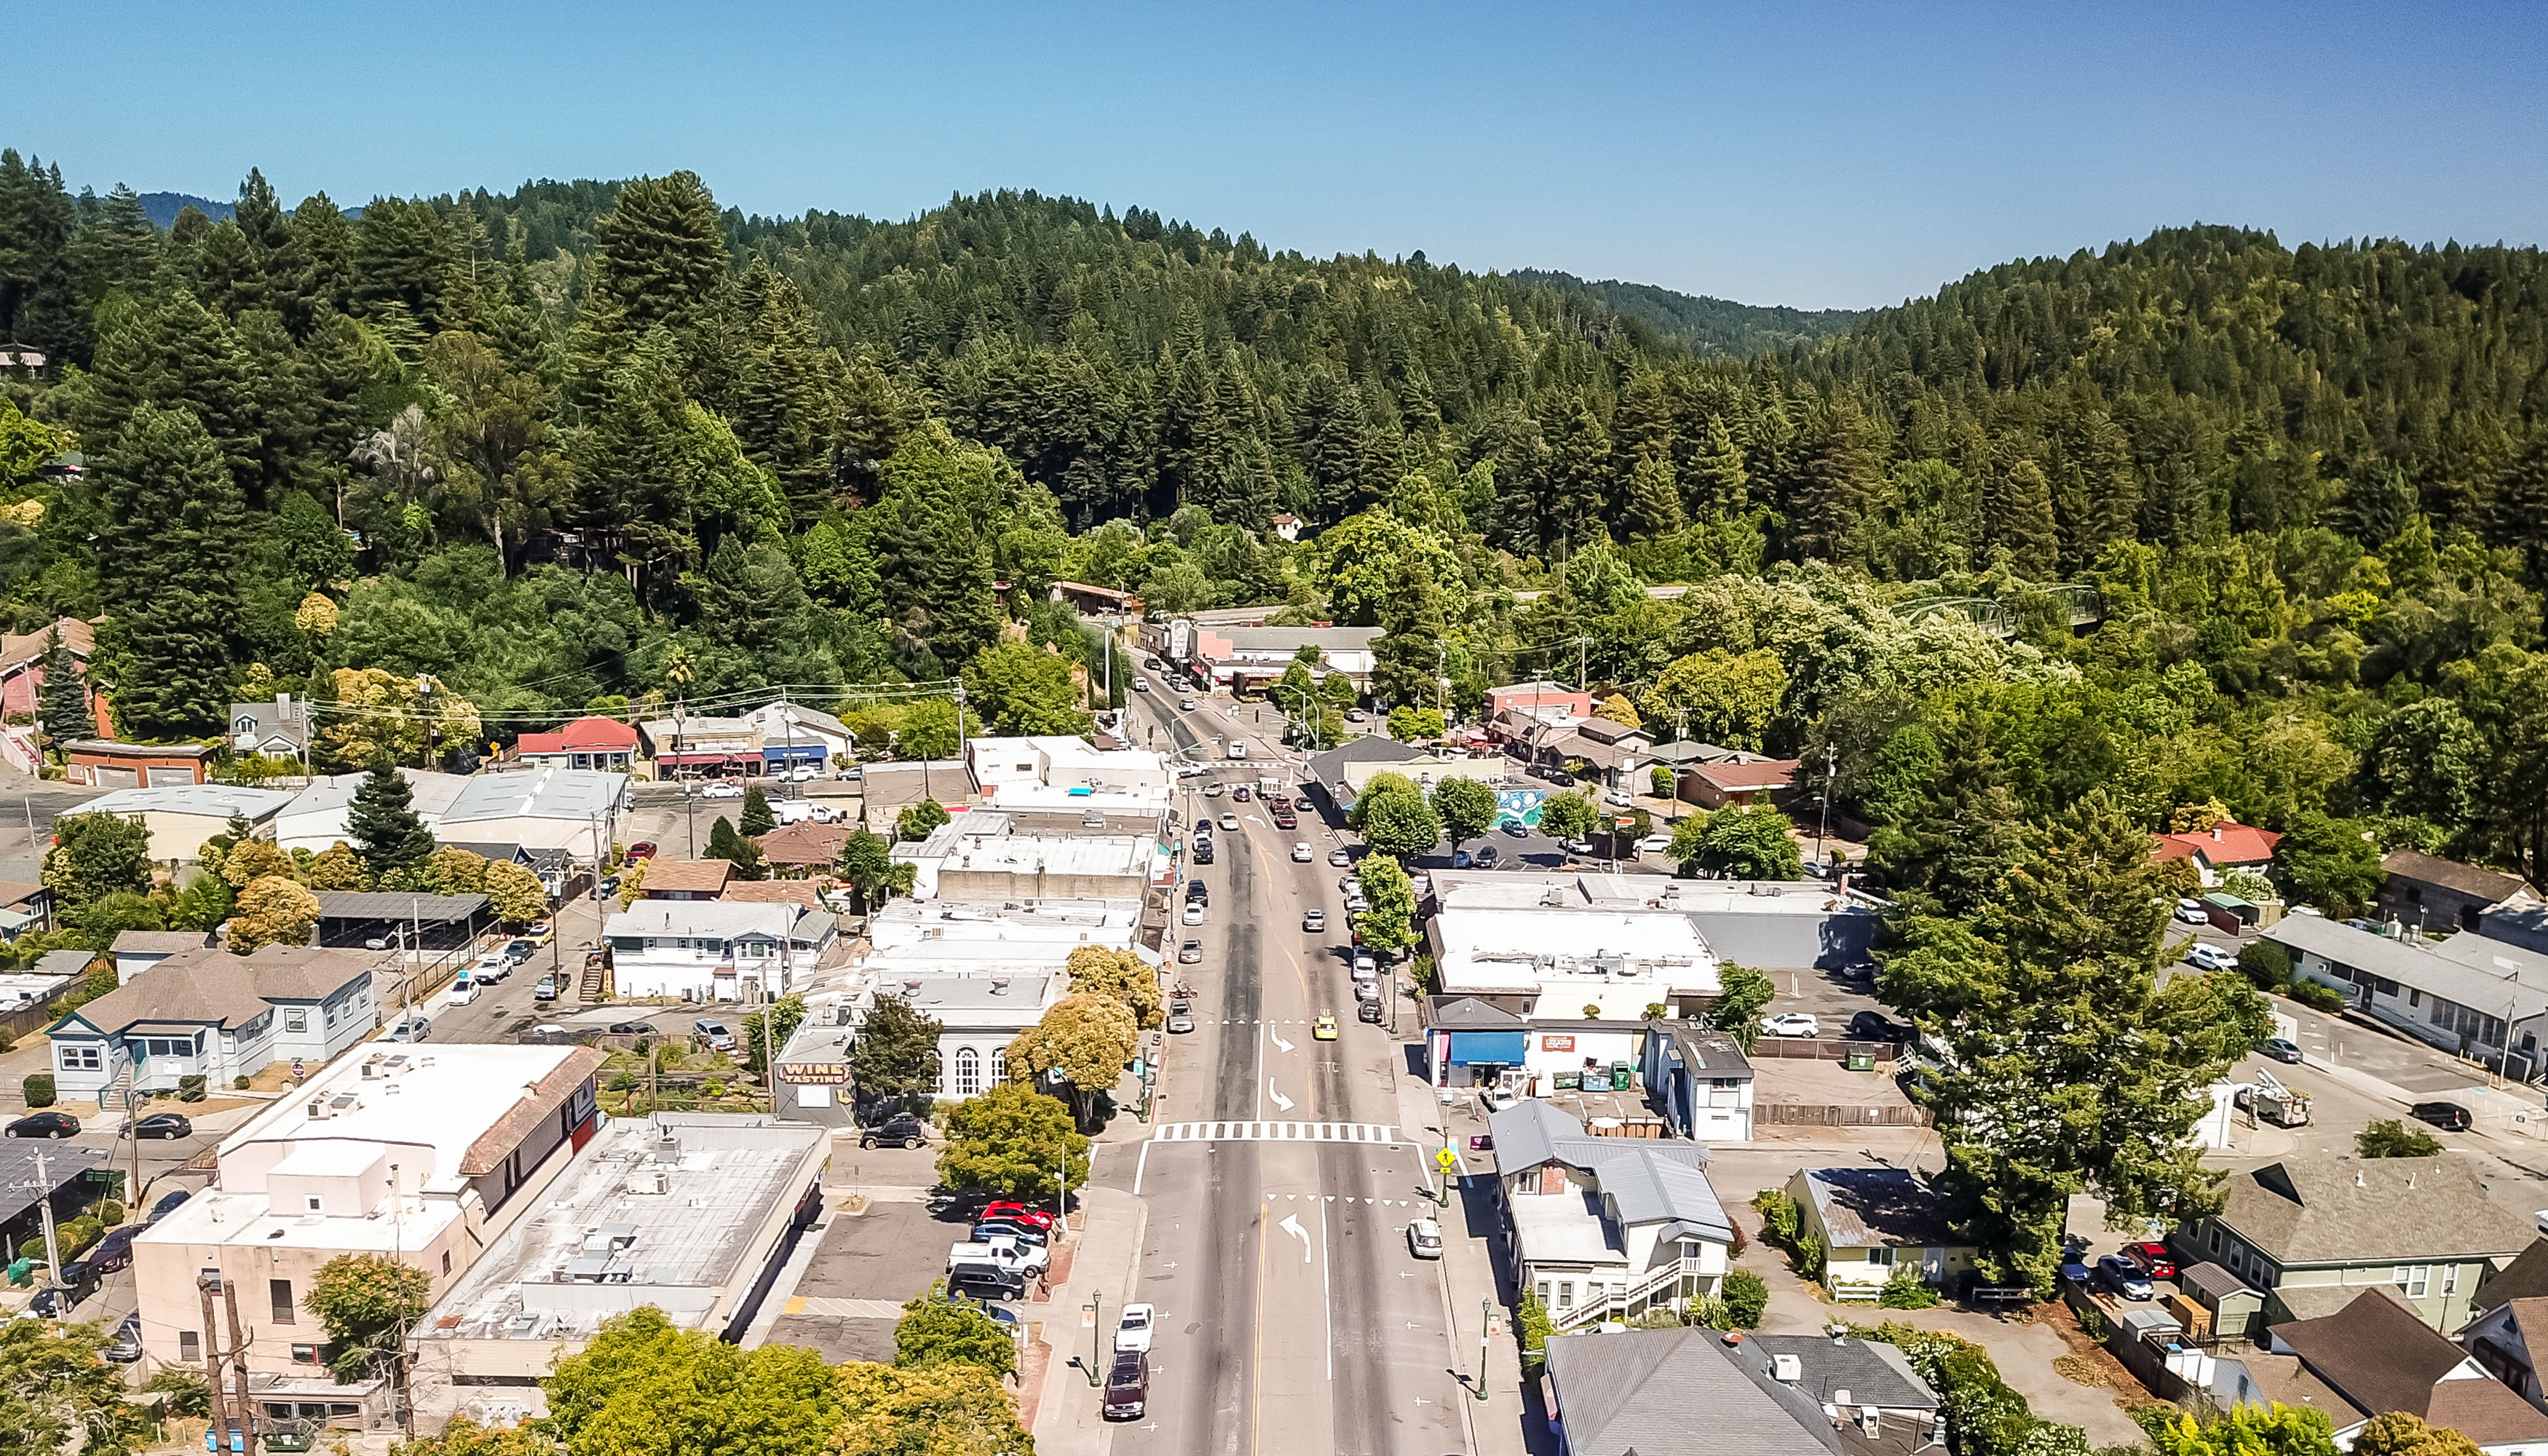 Aerial shot of small town with lush green trees, blue sky, and small homes and business dotting the landscape. A major street runs through the center of the land.